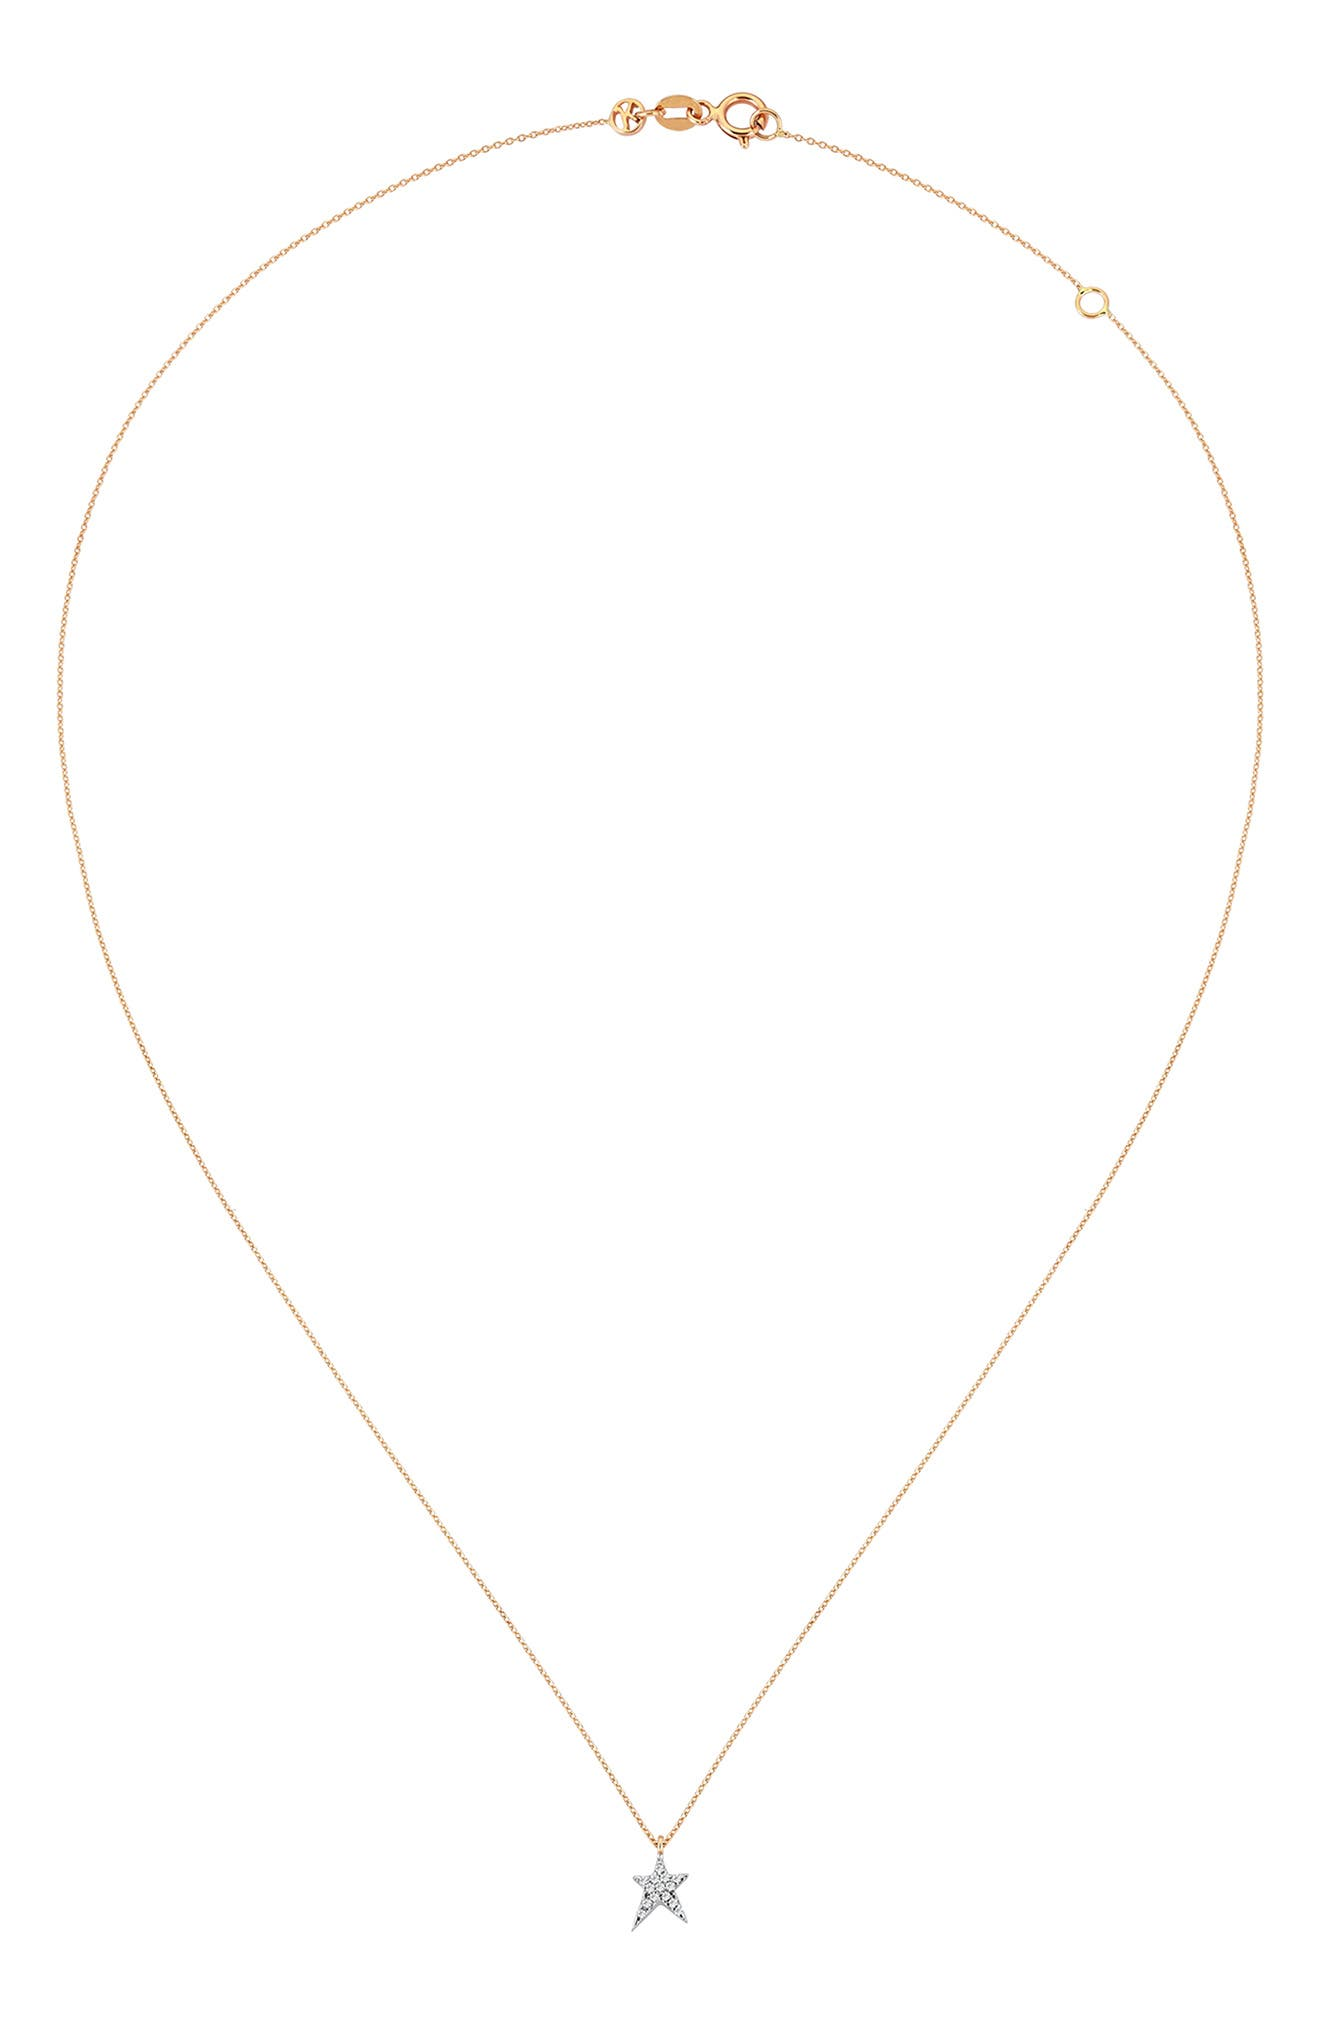 Small Struck Star Diamond Necklace,                             Main thumbnail 1, color,                             ROSE GOLD